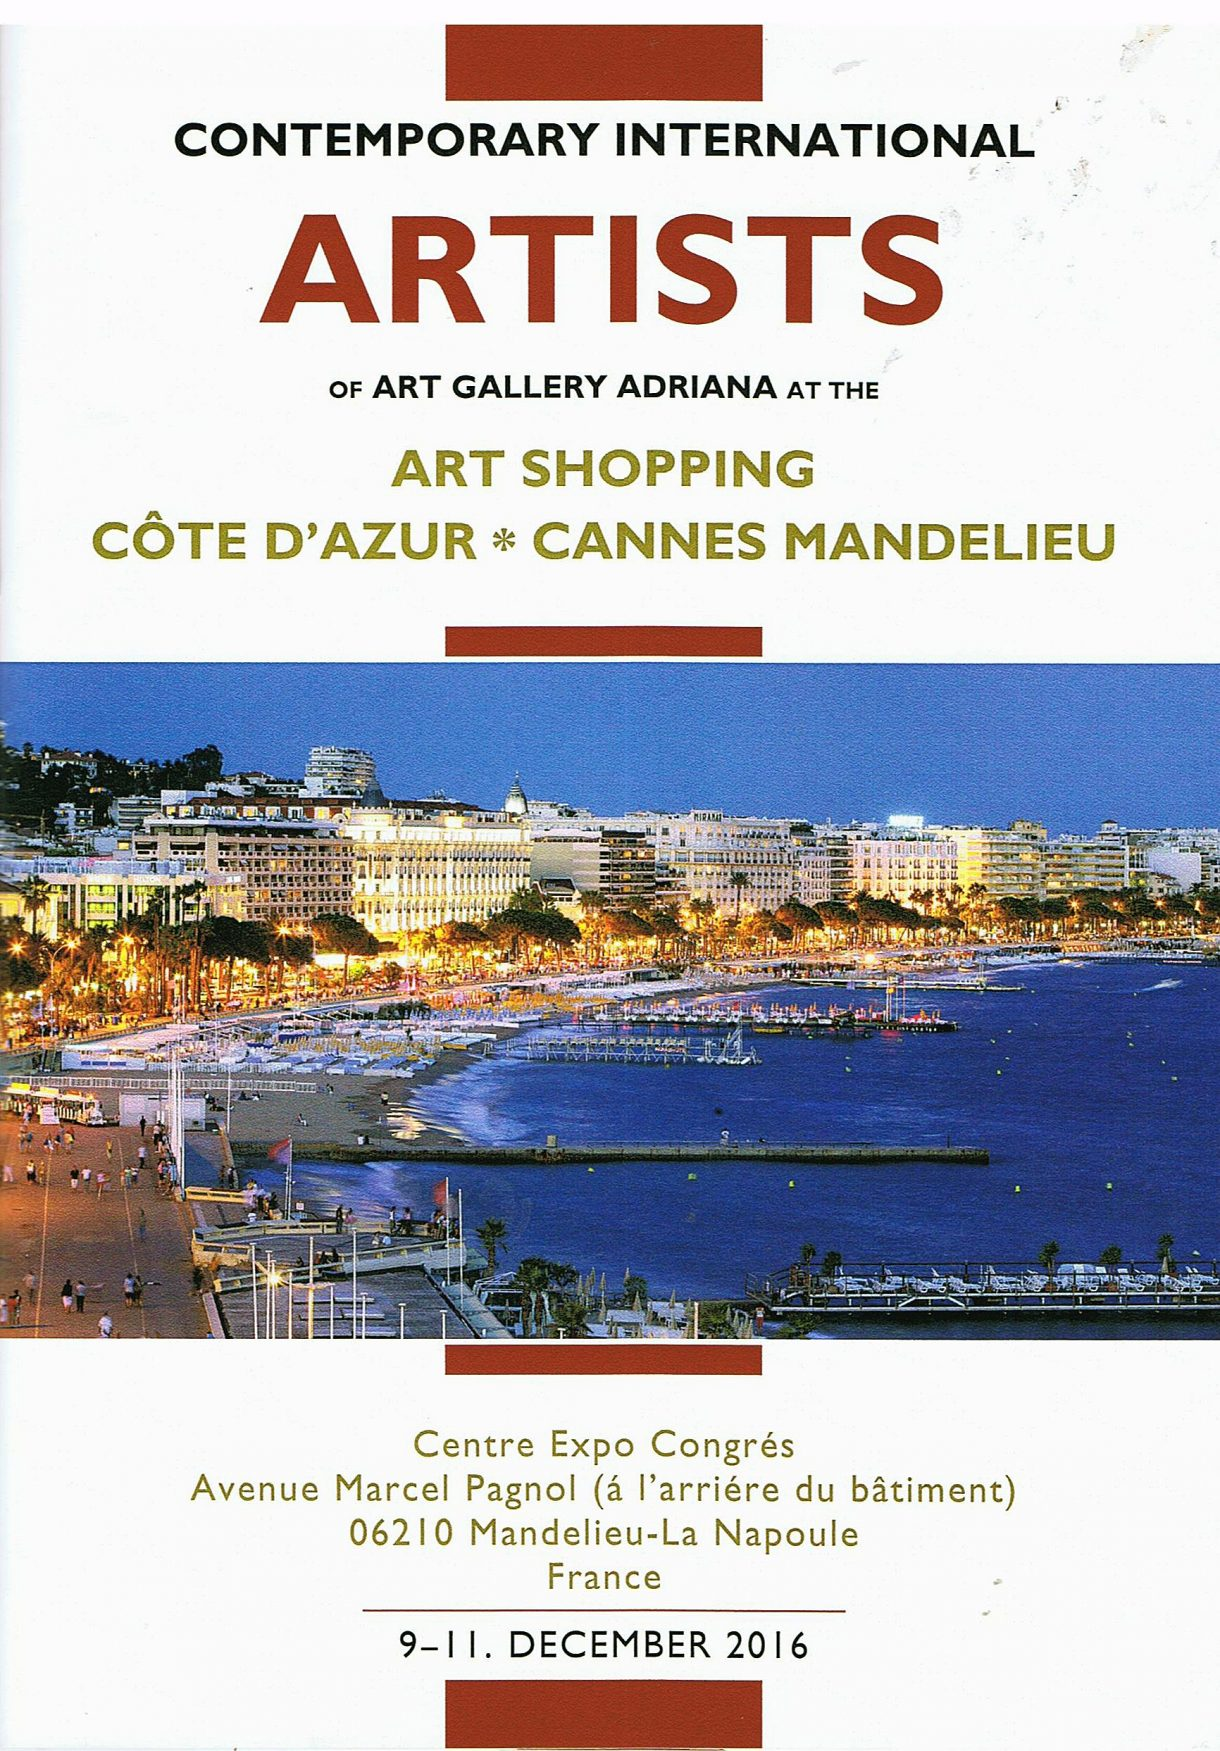 Katalog Art Cannes neu